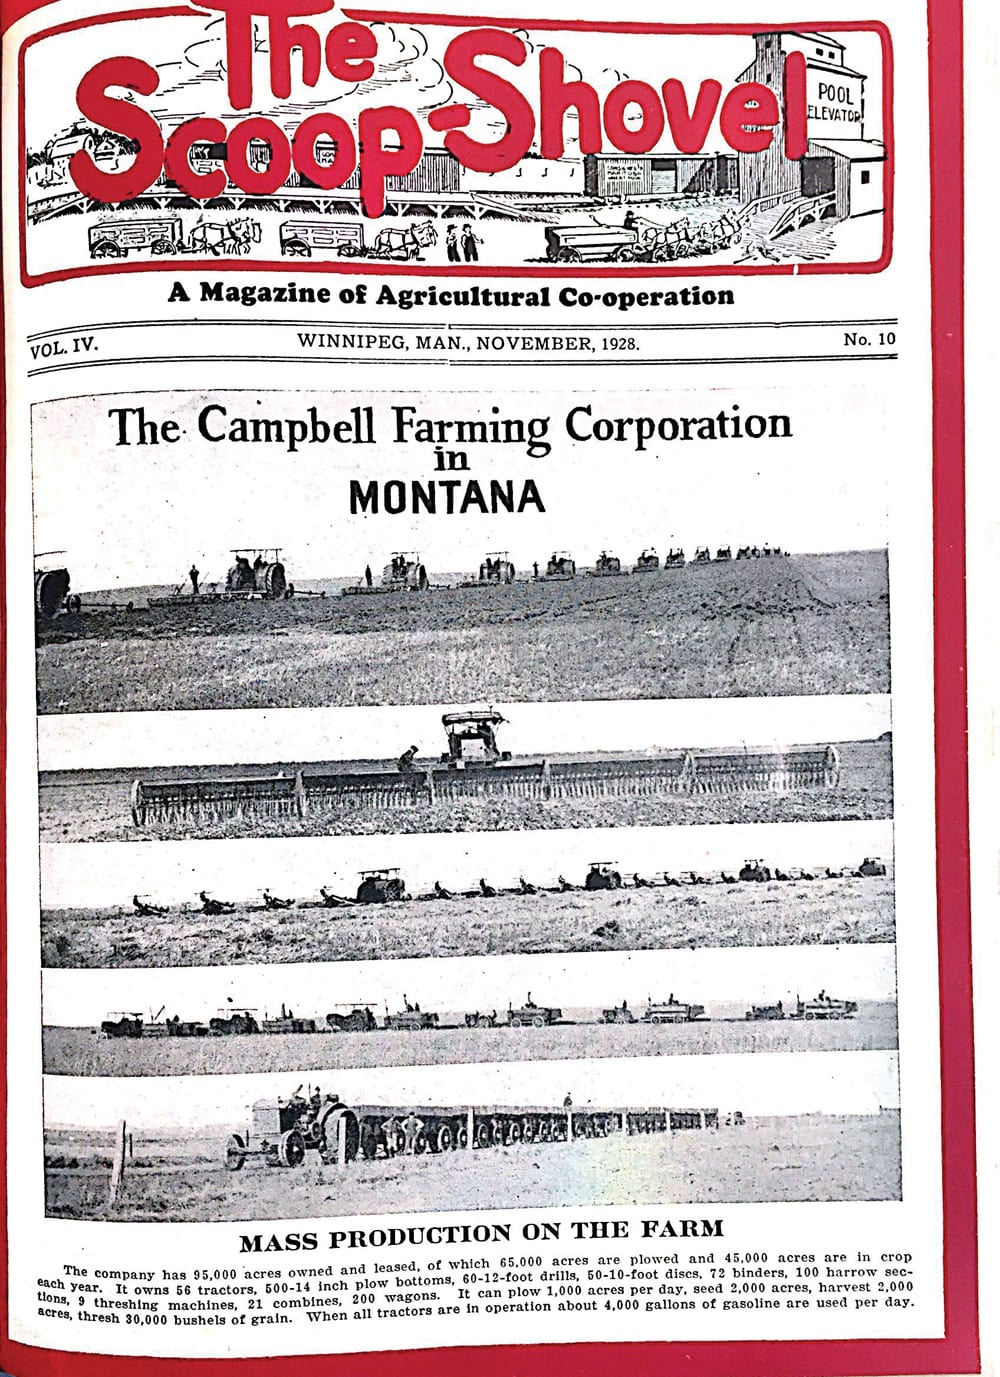 The Campbell Farming Corporation